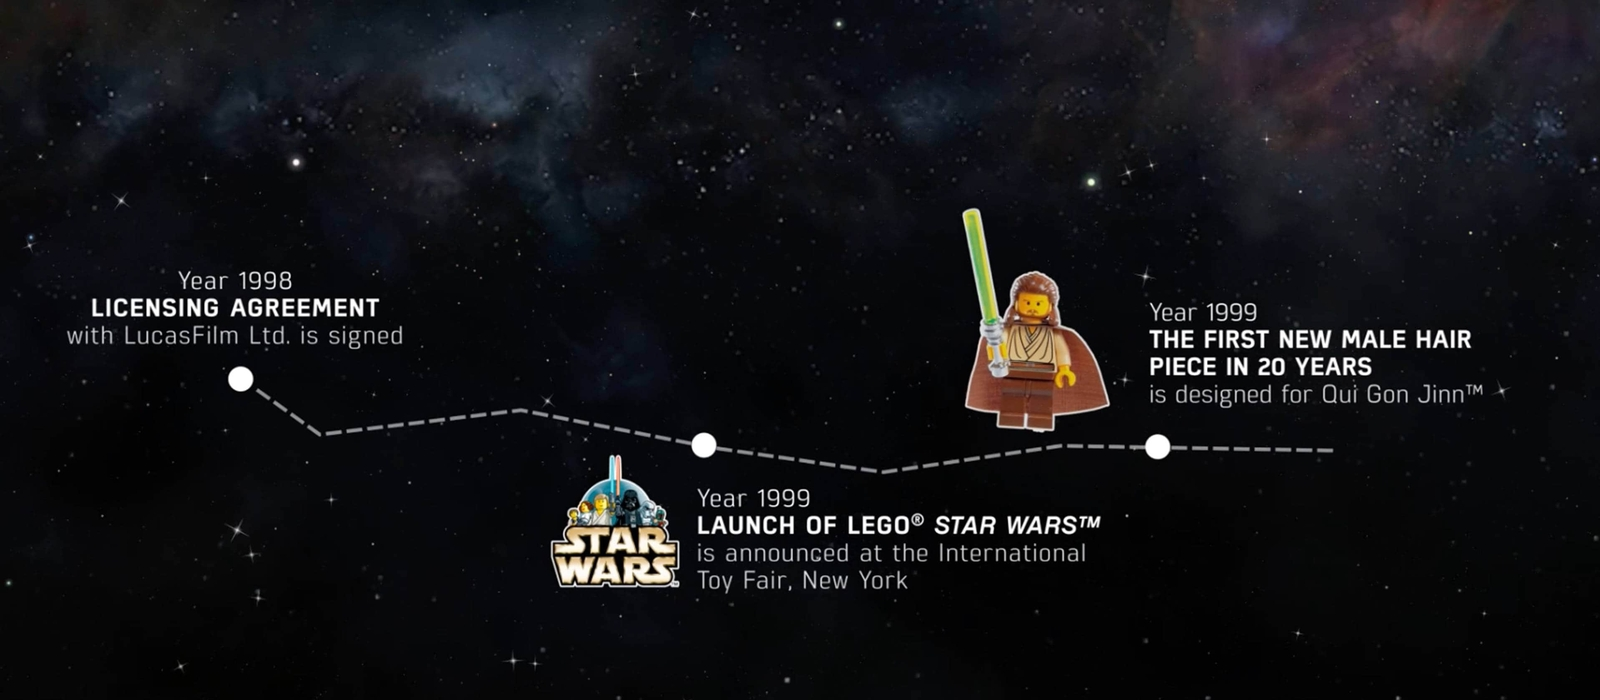 Celebrating 20 Years of LEGO® Star Wars™ timeline video